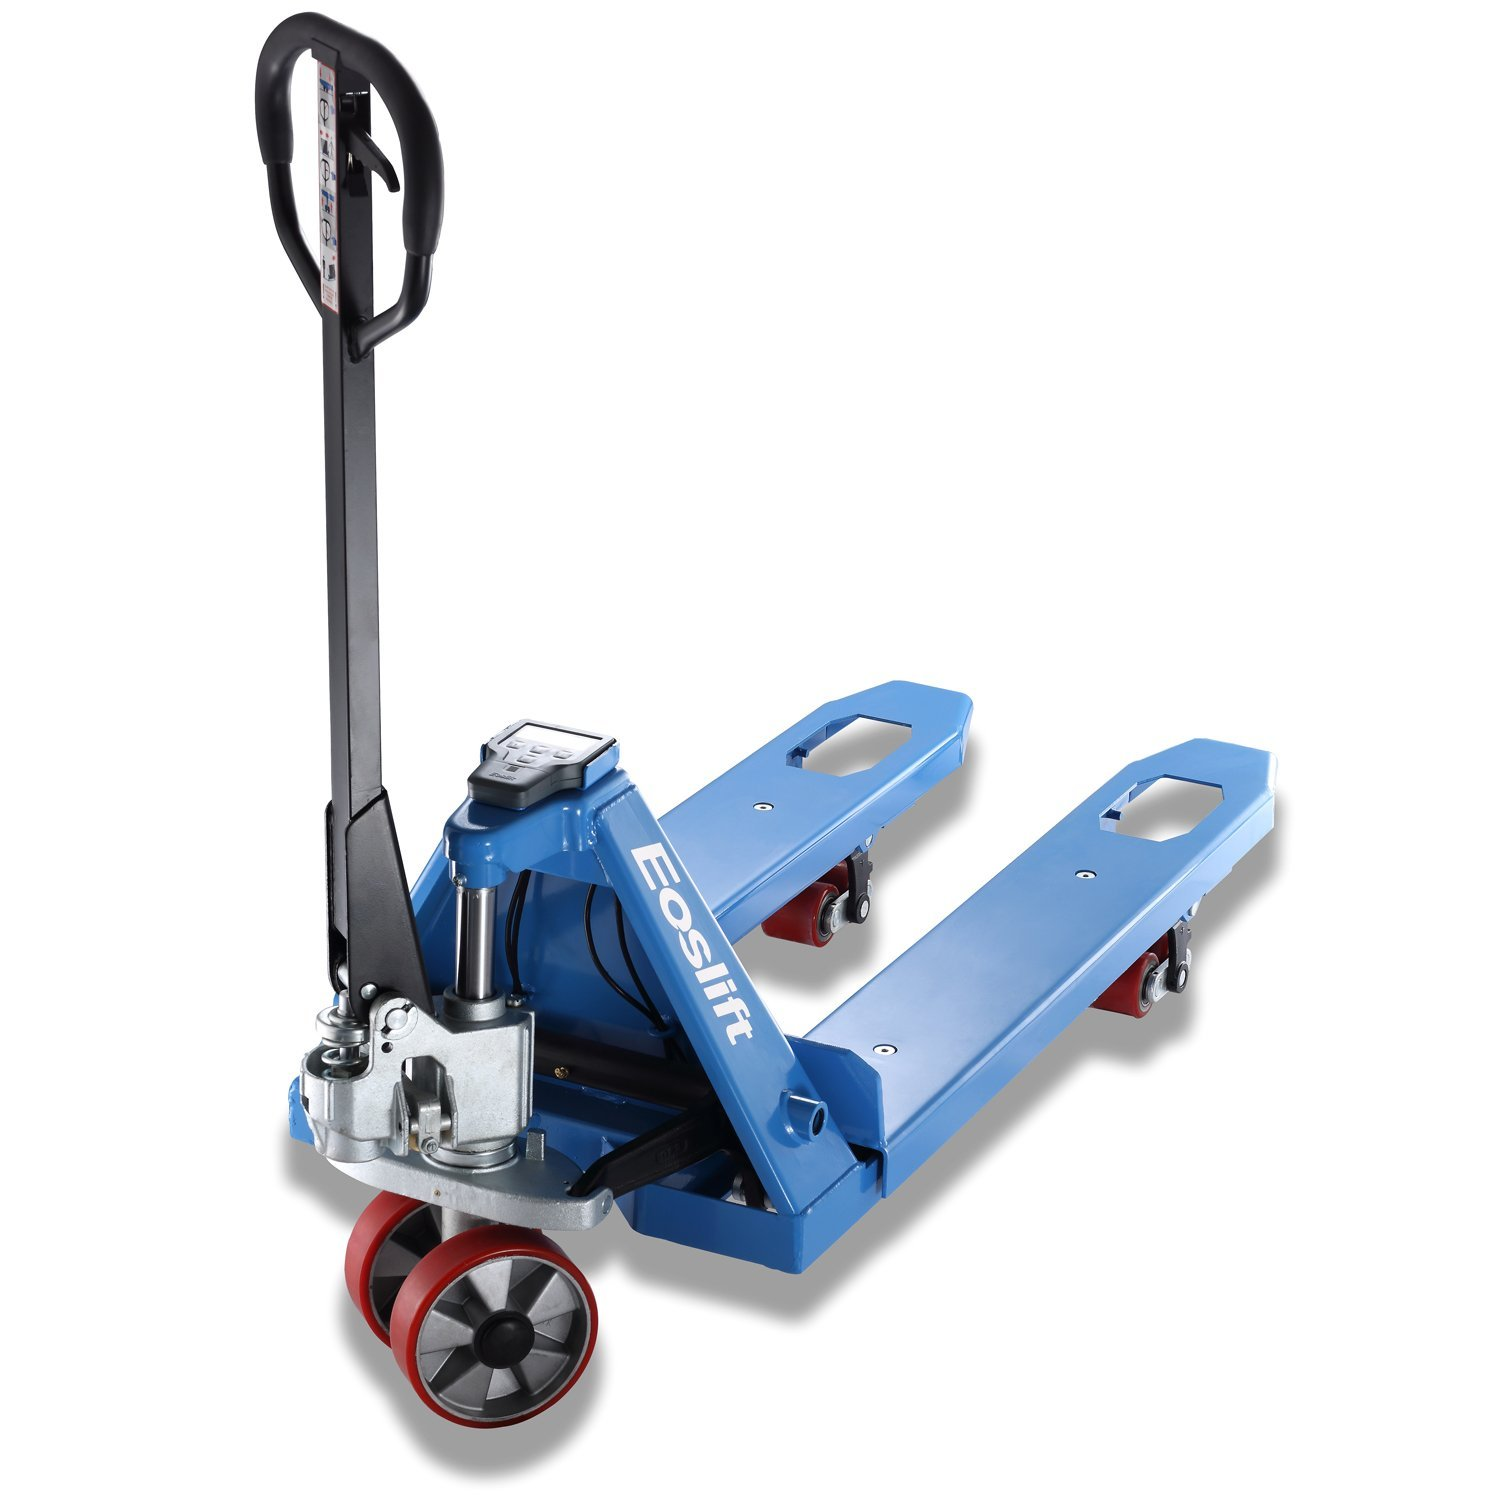 Eoslift E20V Value Scale Pallet Truck 27X48'' 4400lb. Capacity by Eoslift